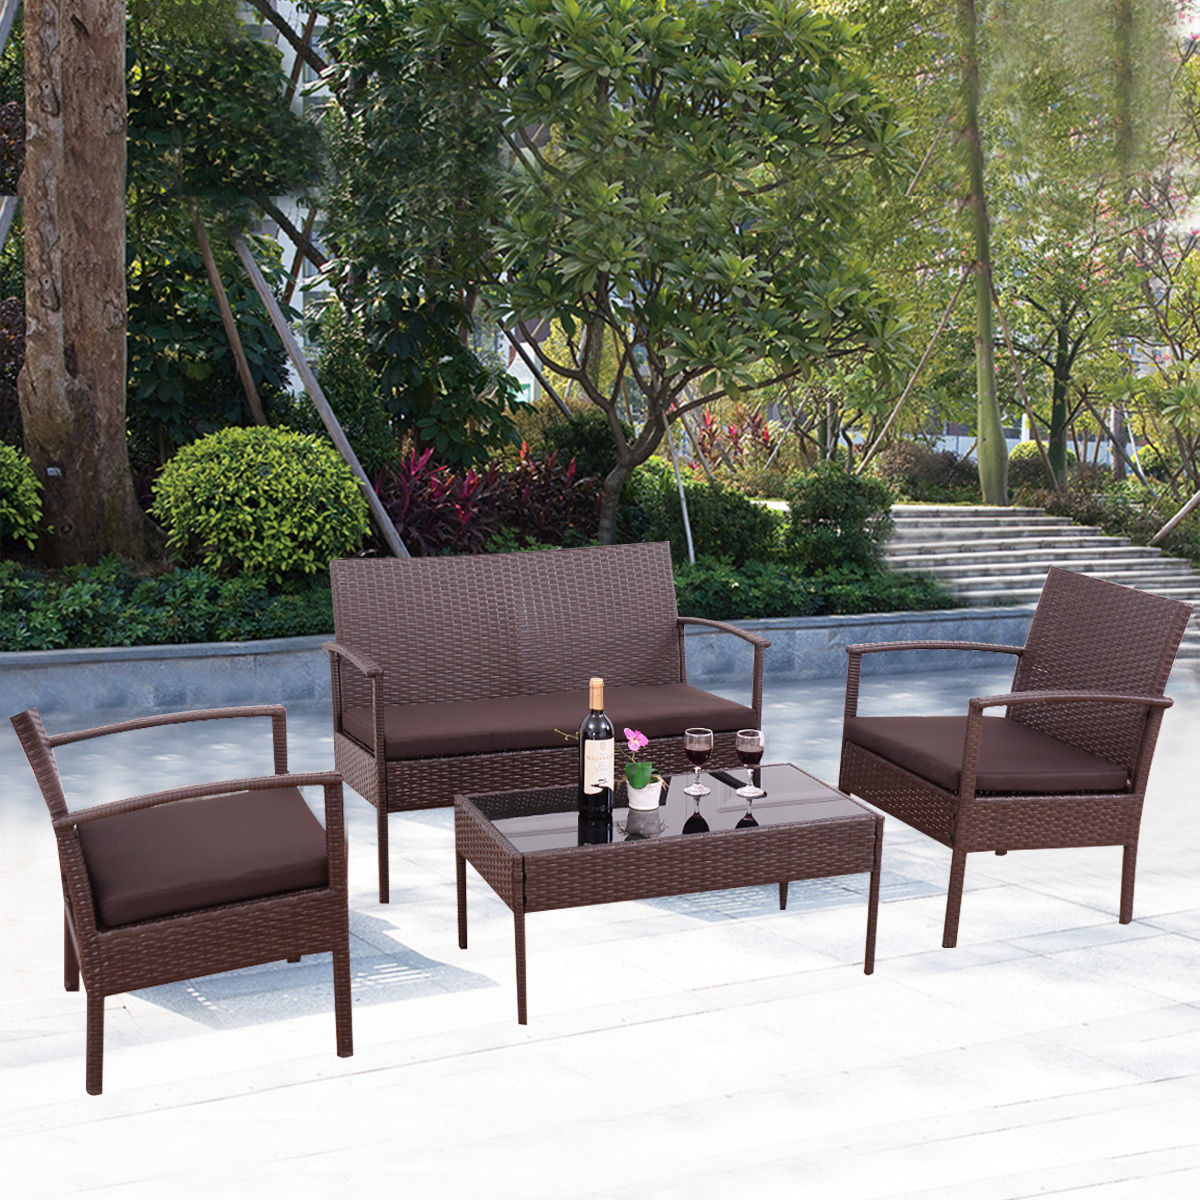 Costway 4 PCS Patio Rattan Wicker Furniture Set Brown Loveseat Sofa  Cushioned Garden Yard